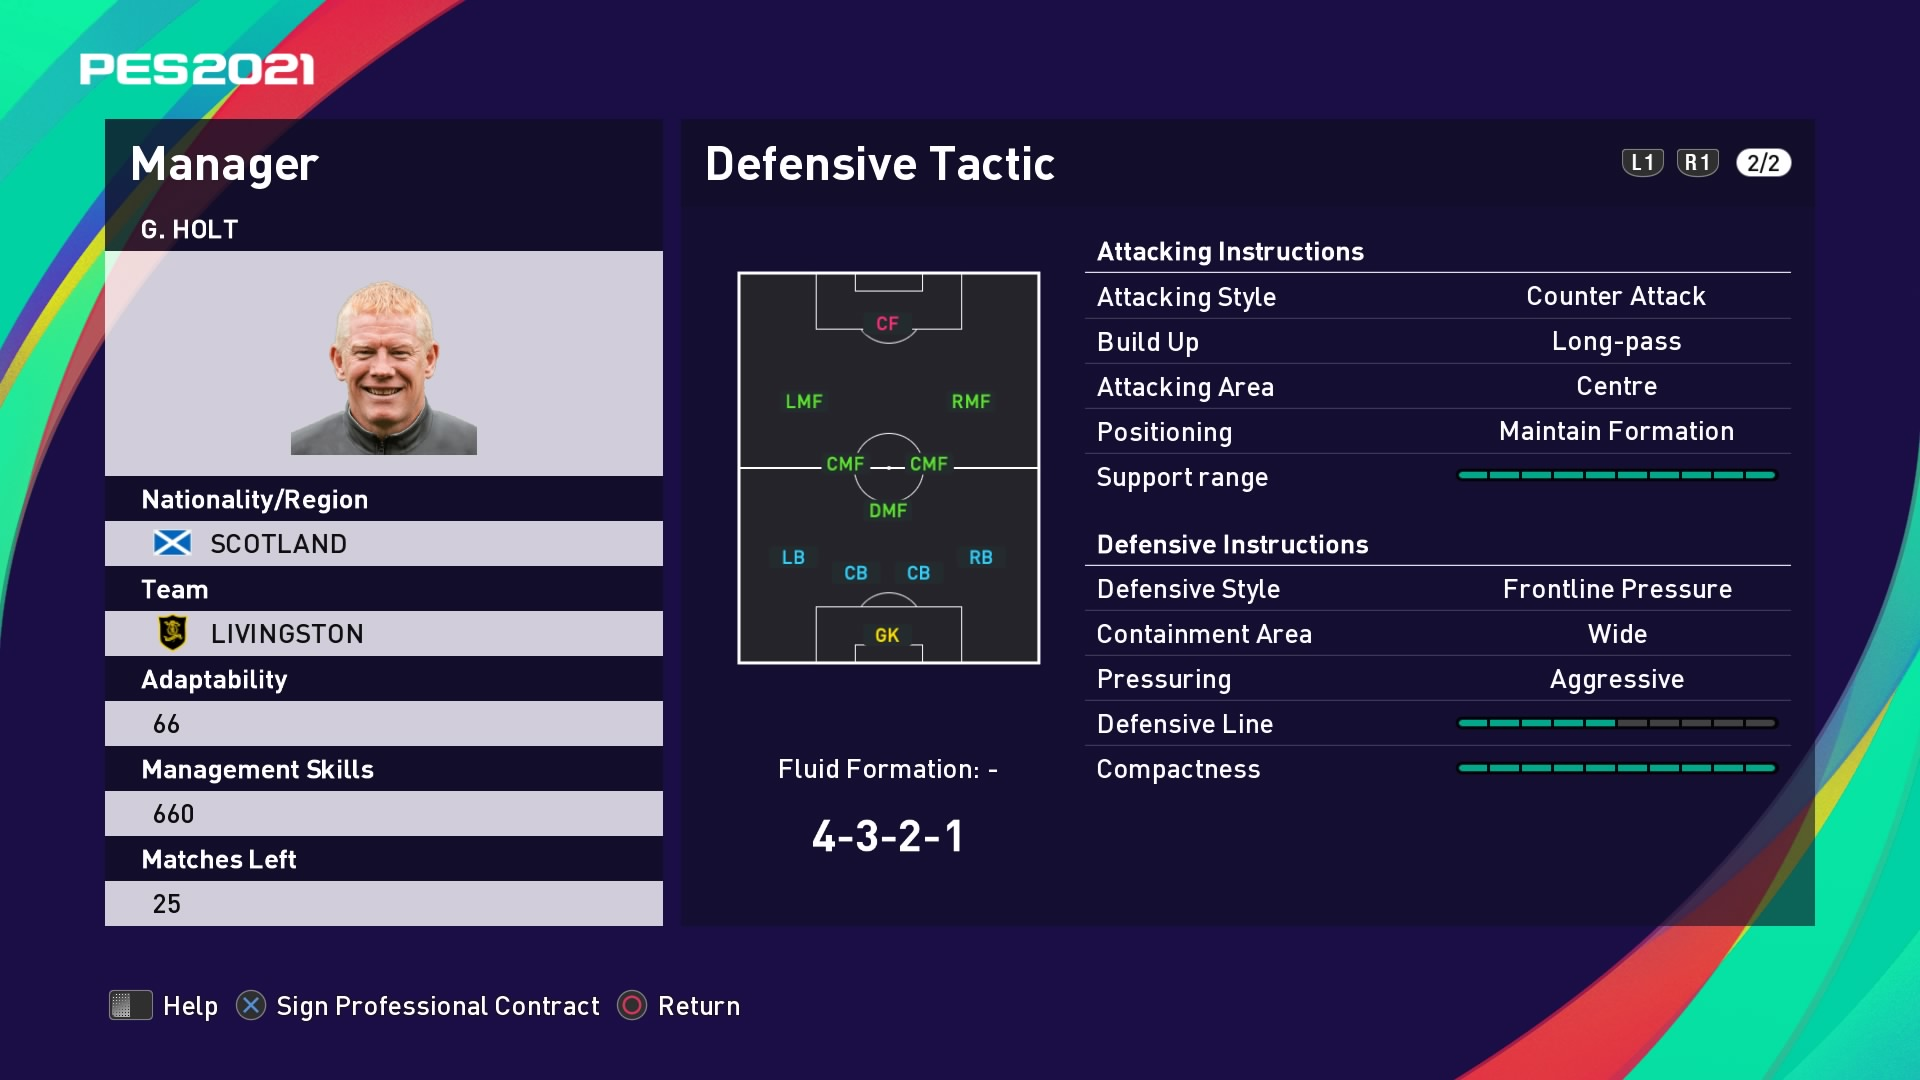 G. Holt (Gary Holt) Defensive Tactic in PES 2021 myClub